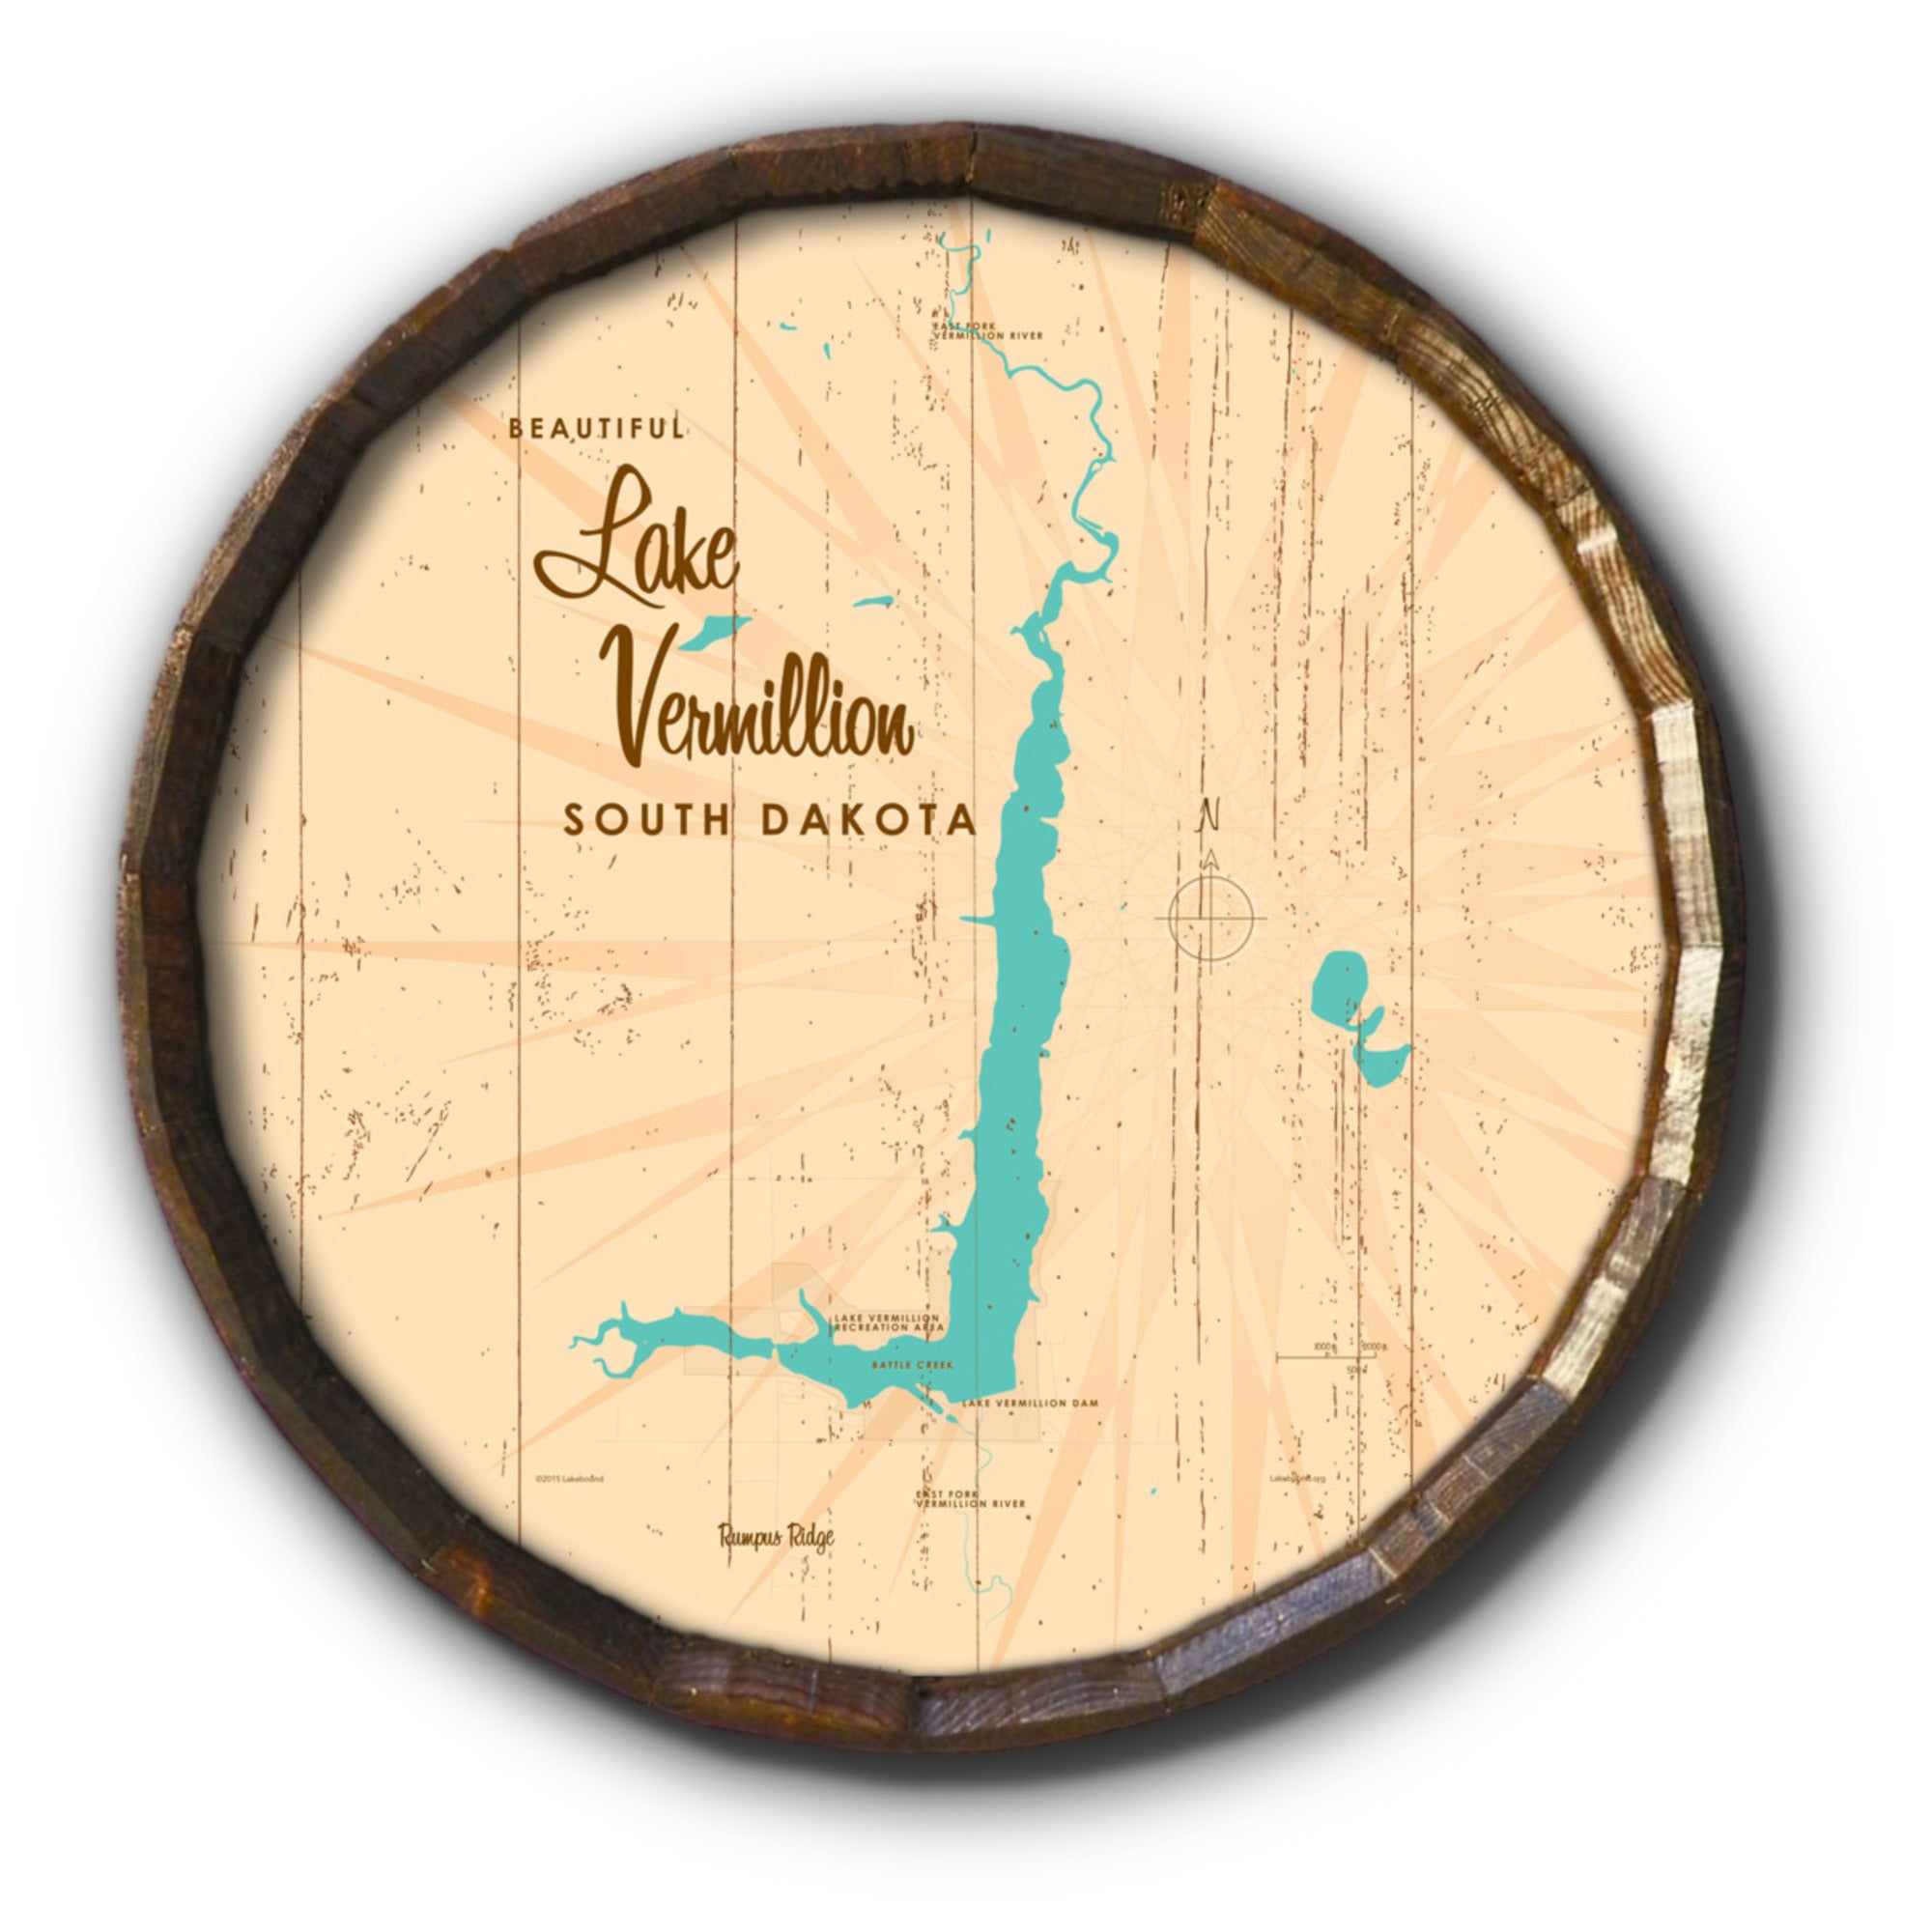 Lake Vermillion South Dakota, Rustic Barrel End Map Art